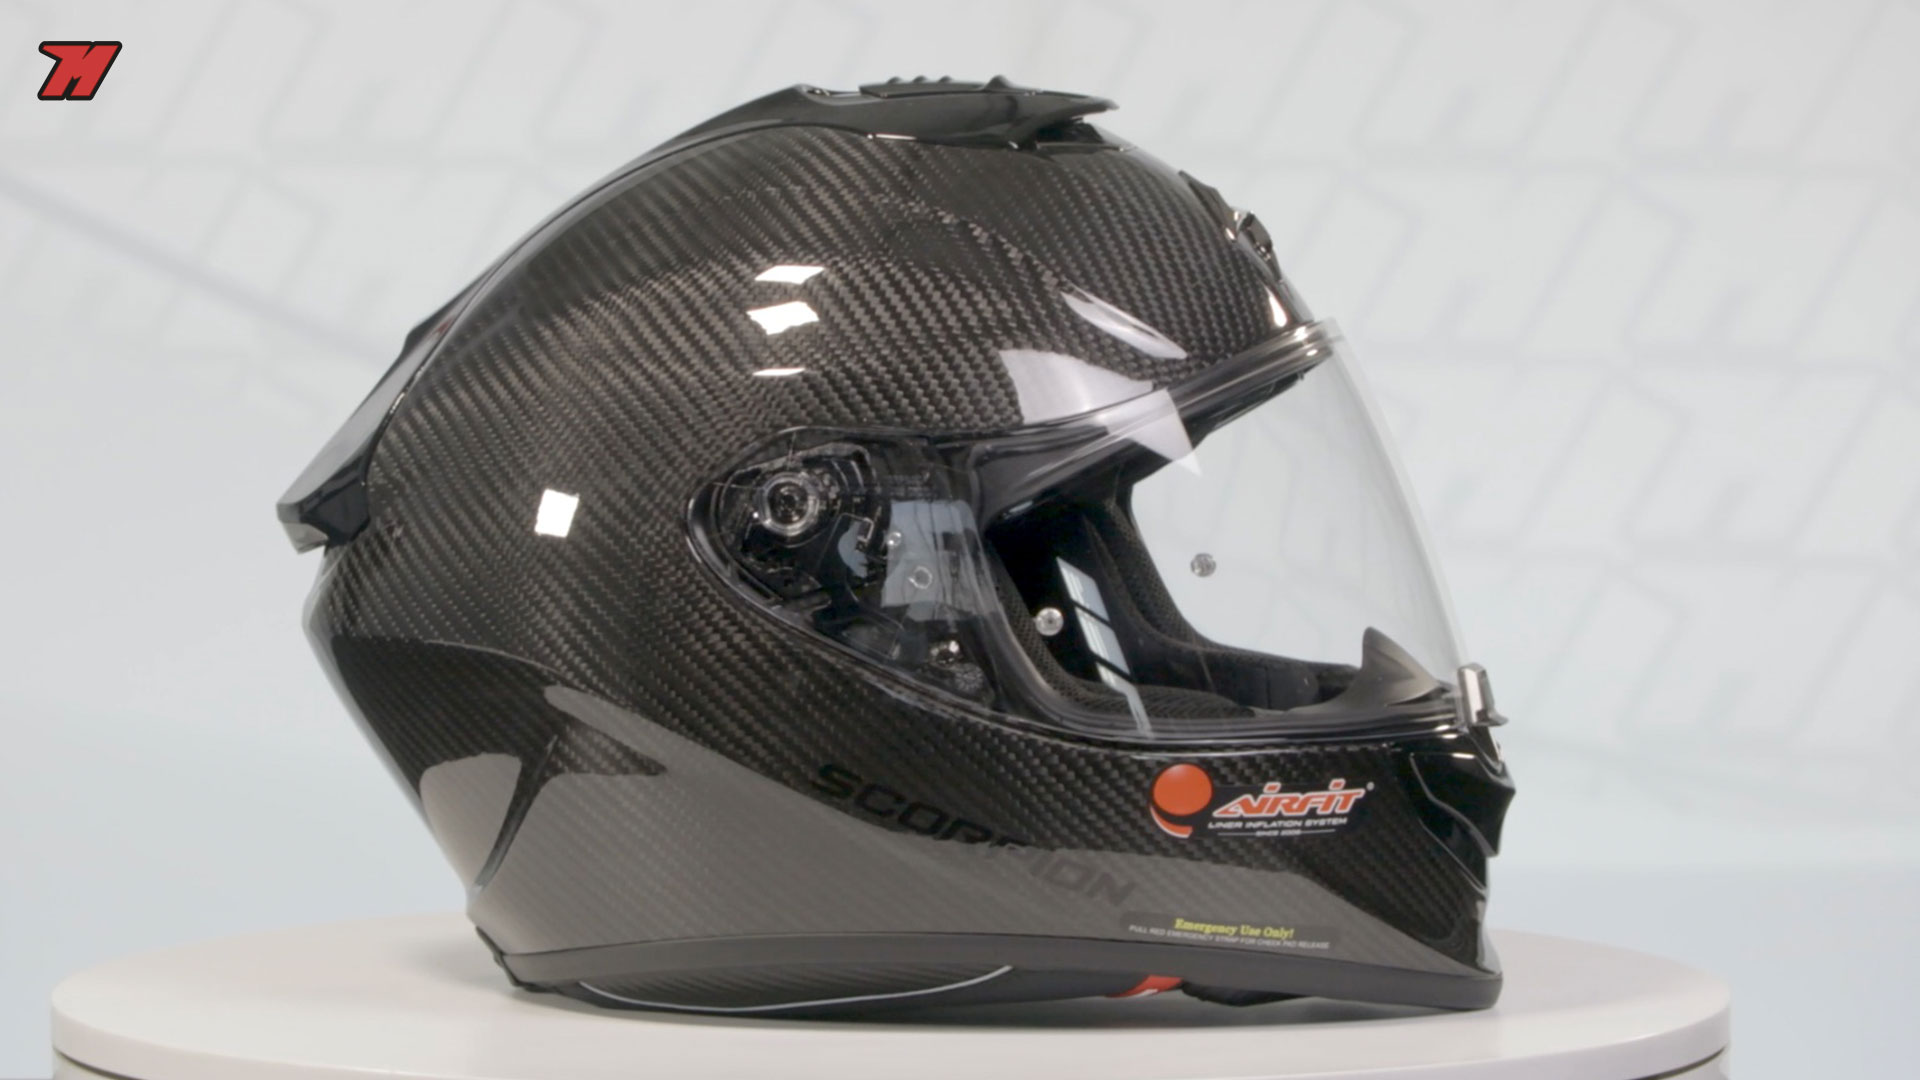 Carbon Fiber Motorcycle Helmets >> The 8 Lightest Motorcycle Helmets Of The World Motocard